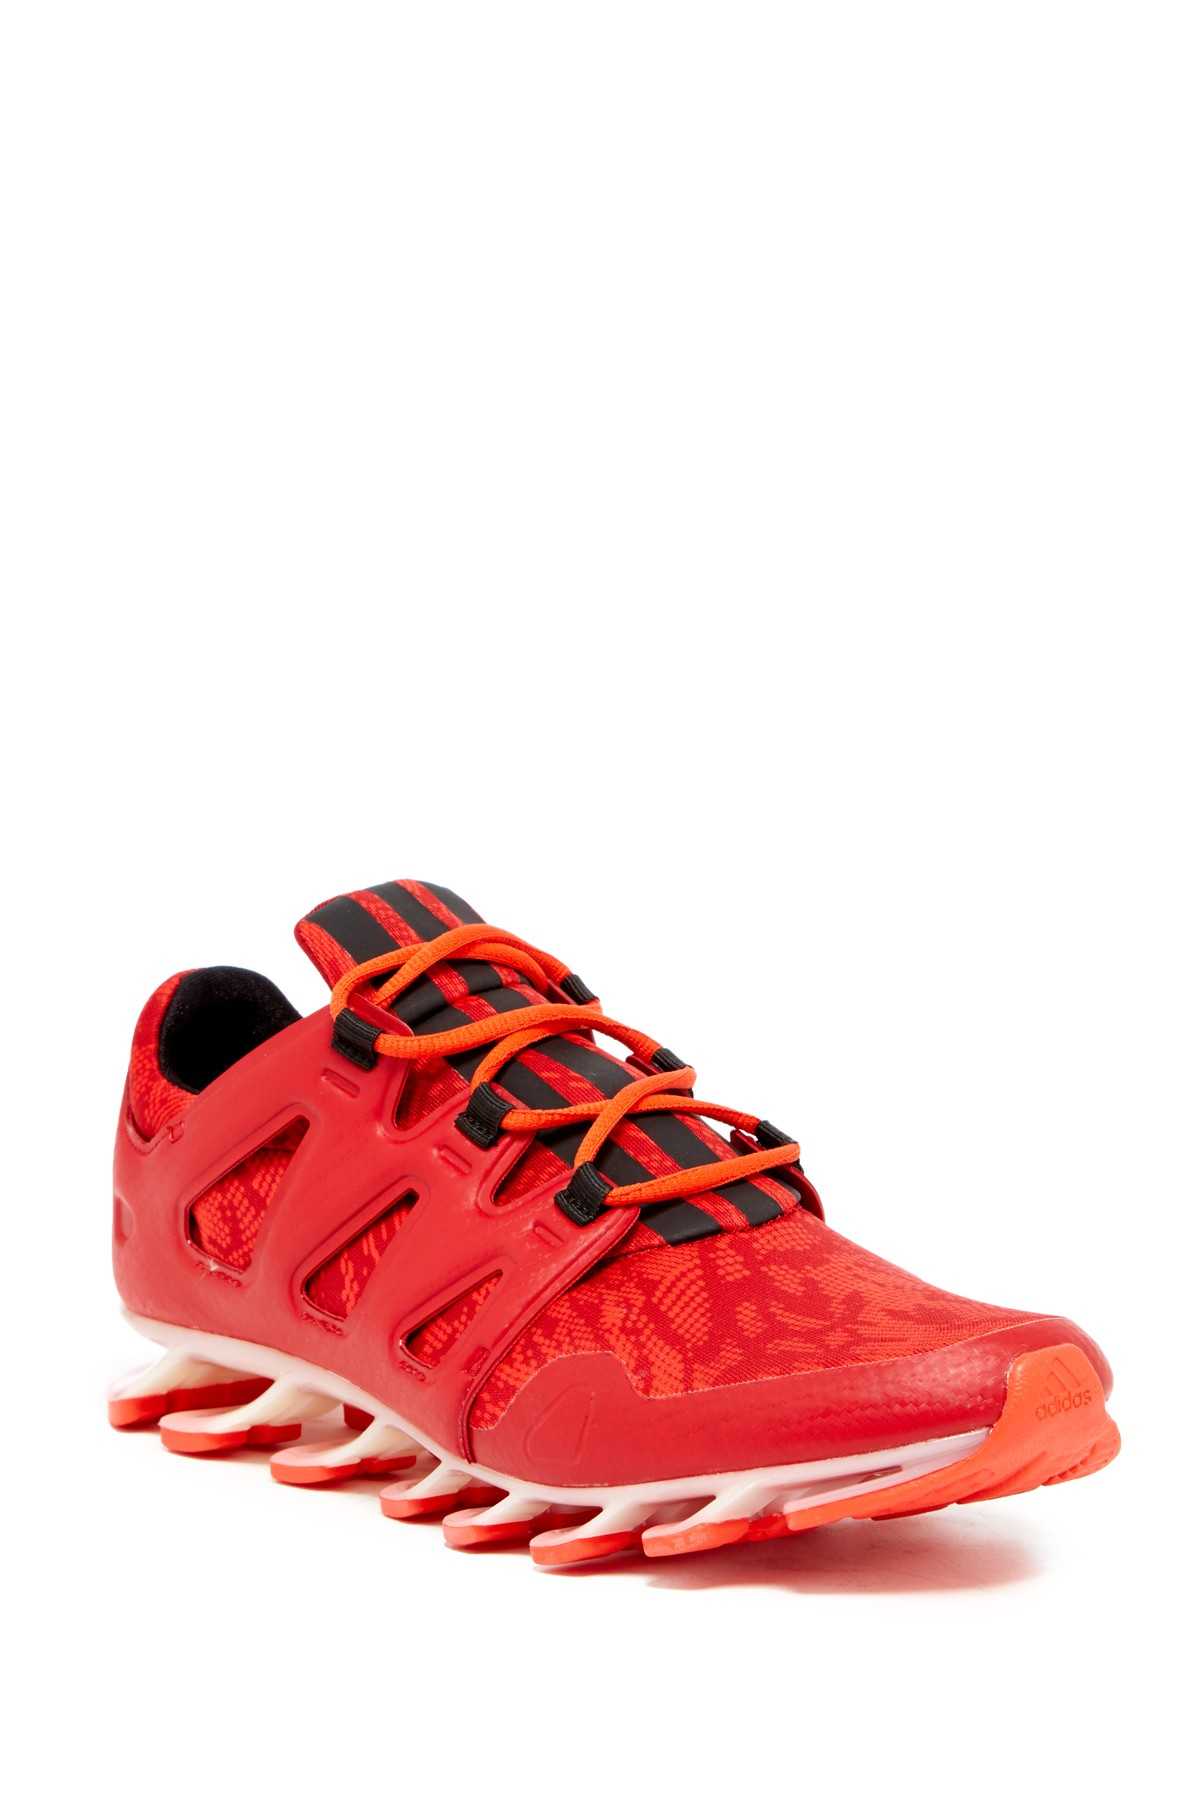 Adidas Men S Springblade Pro Synthetic Running Shoes Low